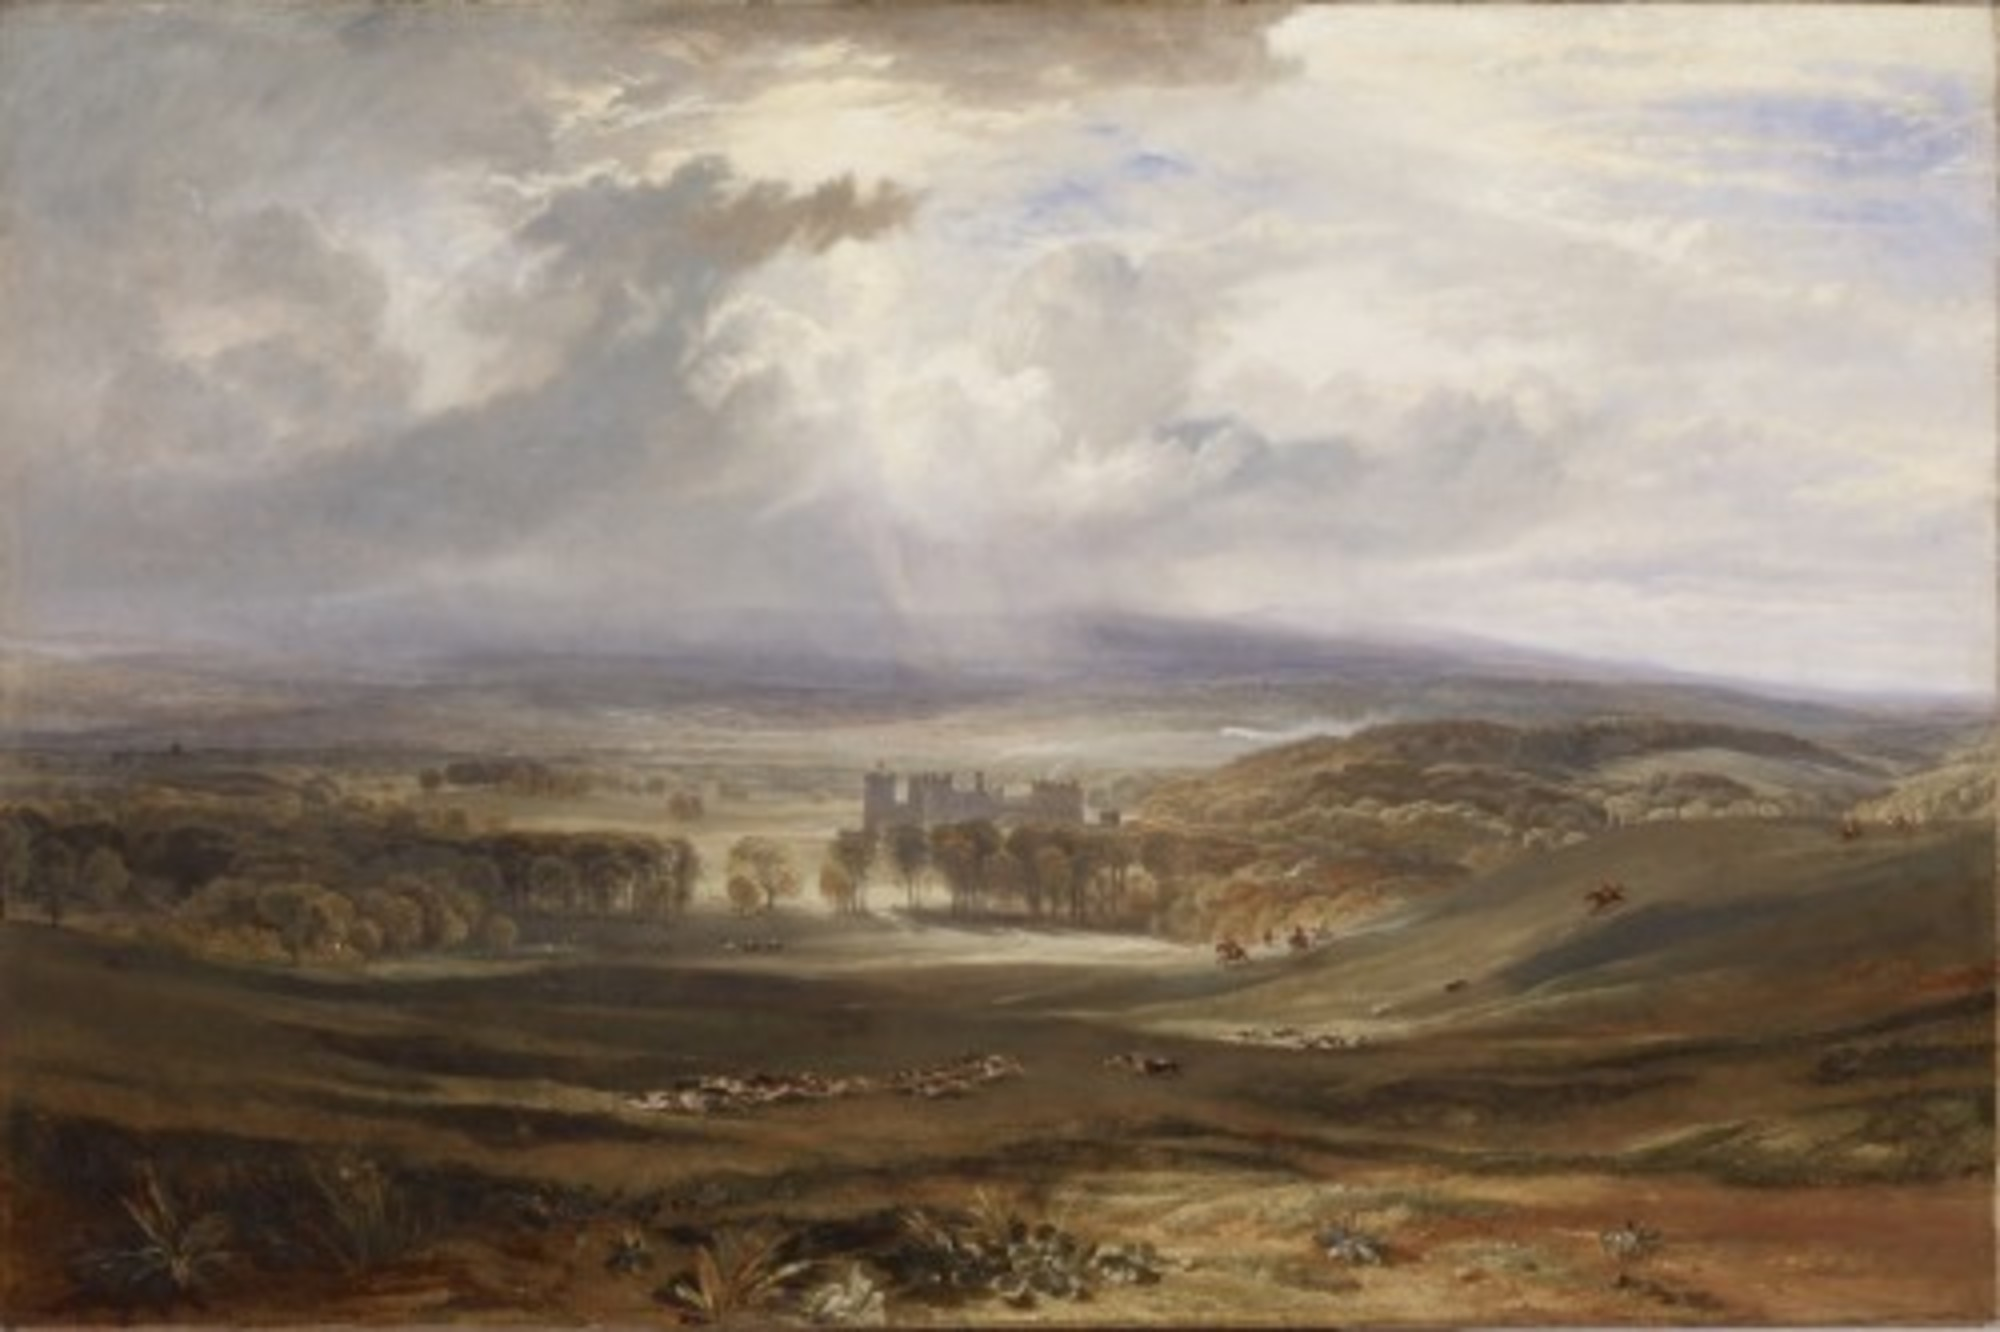 Joseph_Mallord_William_Turner_-_Raby_Castle_the_Seat_of_the_Earl_of_Darlington_-_Walters_3741.jpg